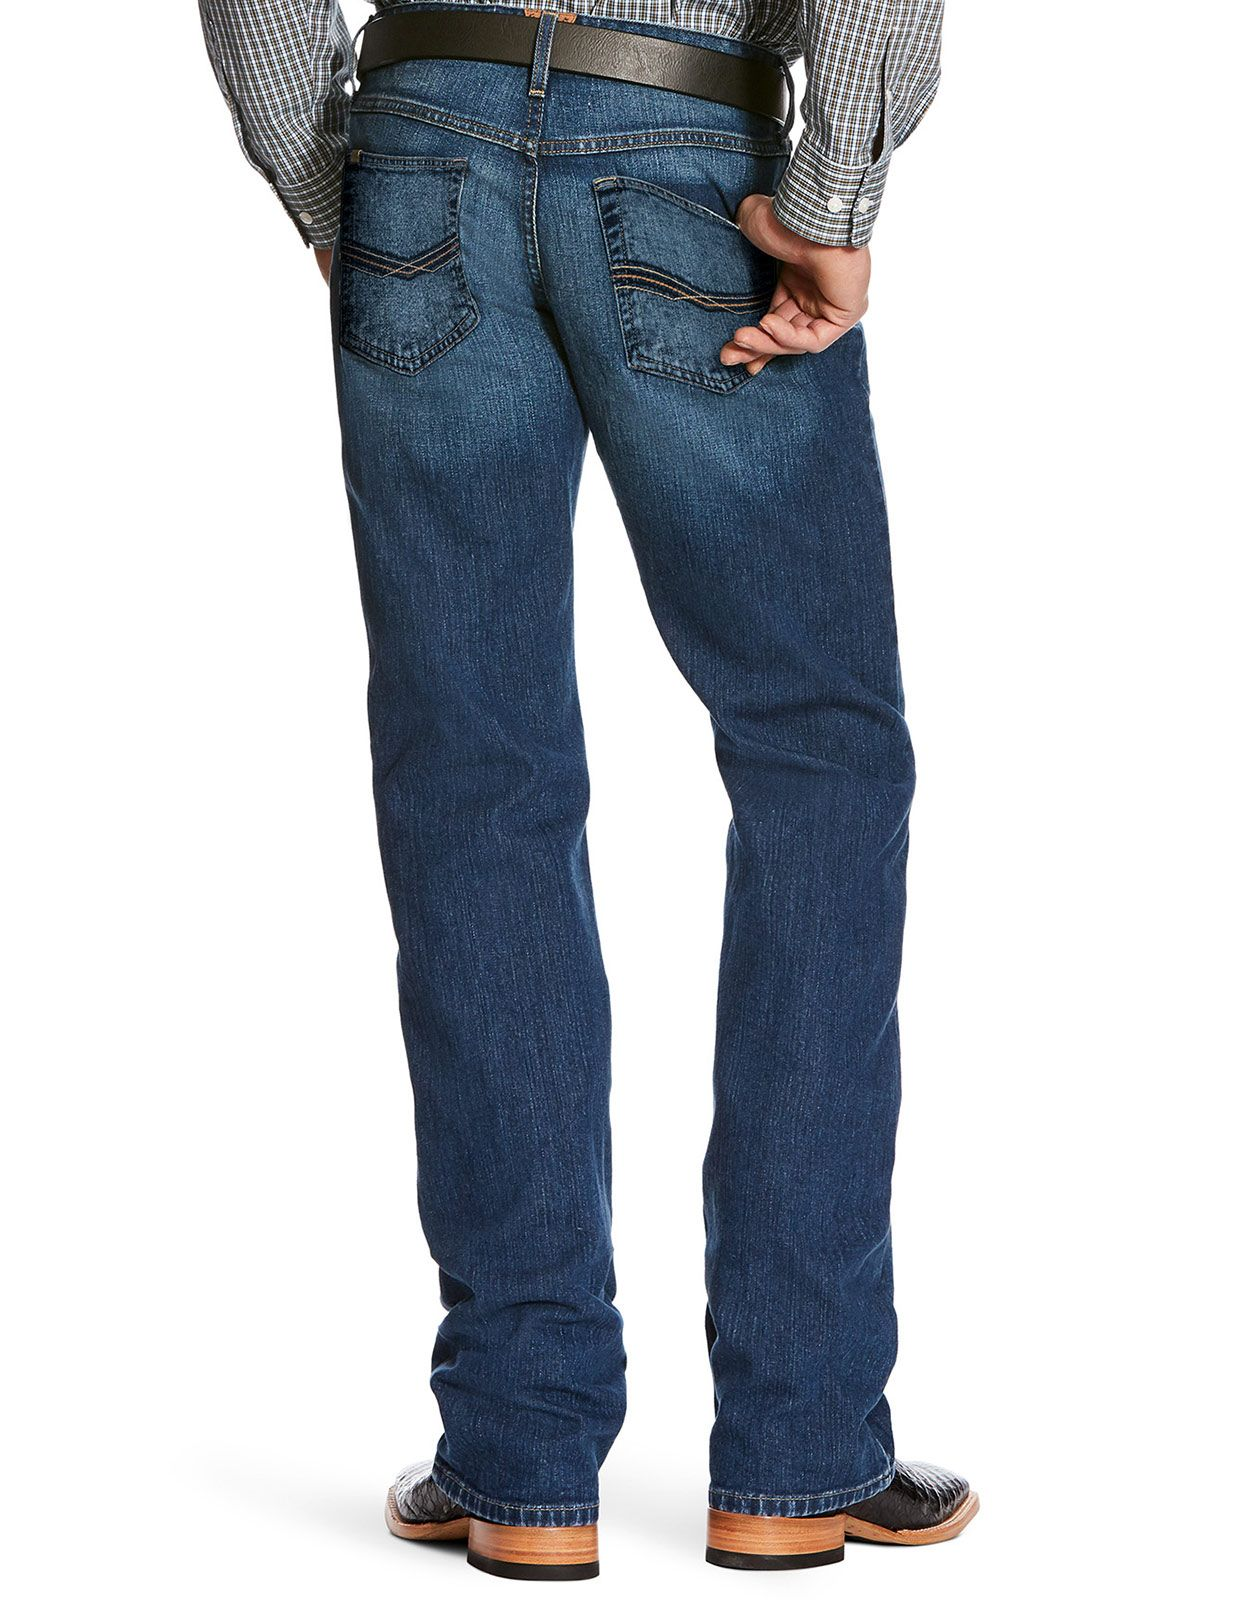 Ariat Men's M5 Legacy Stretch Low Rise Slim Fit Stackable Straight Leg Jeans - Marshall